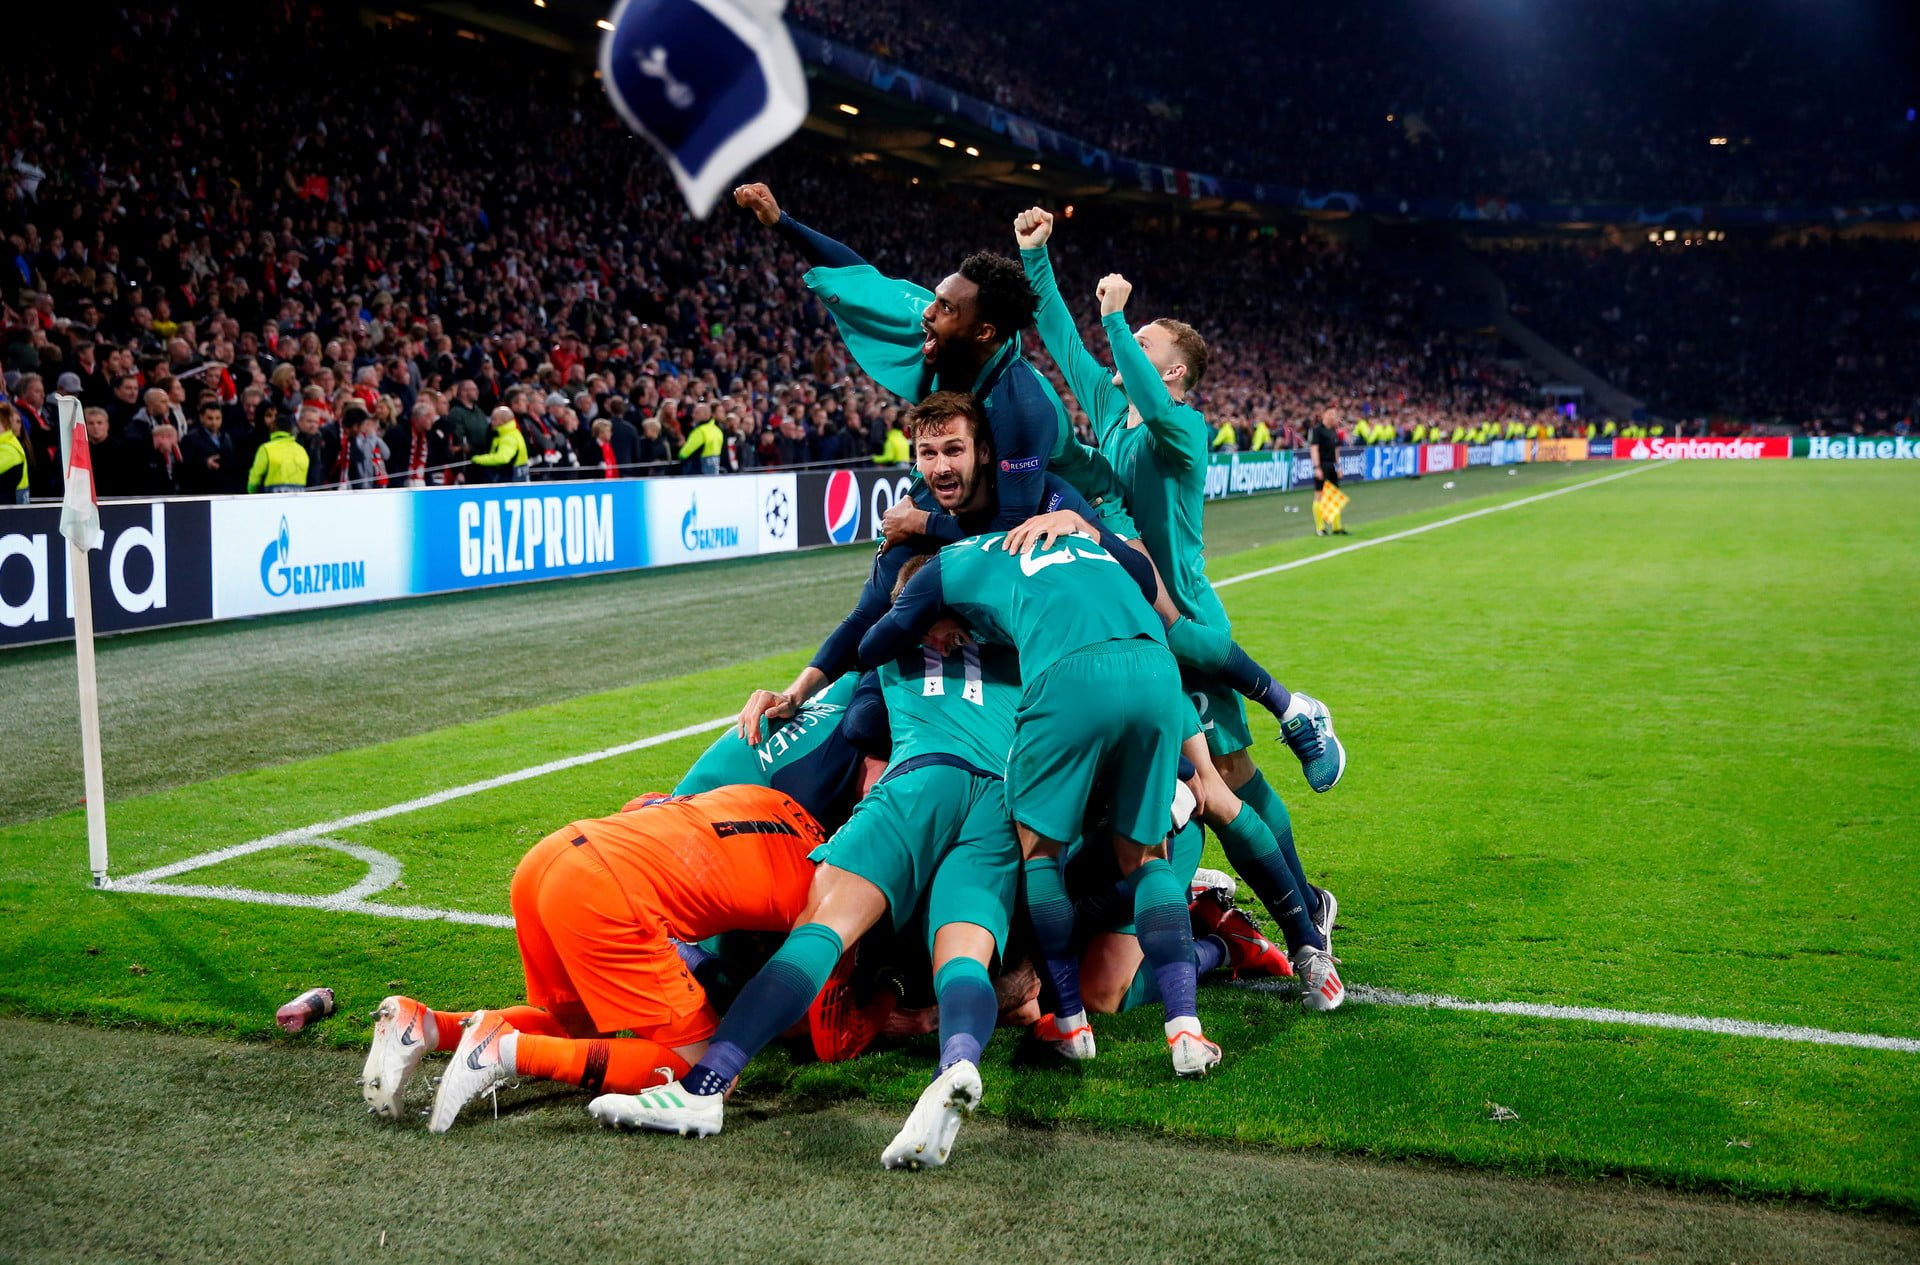 Lucas Moura hat trick Tottenham reached Champions League final